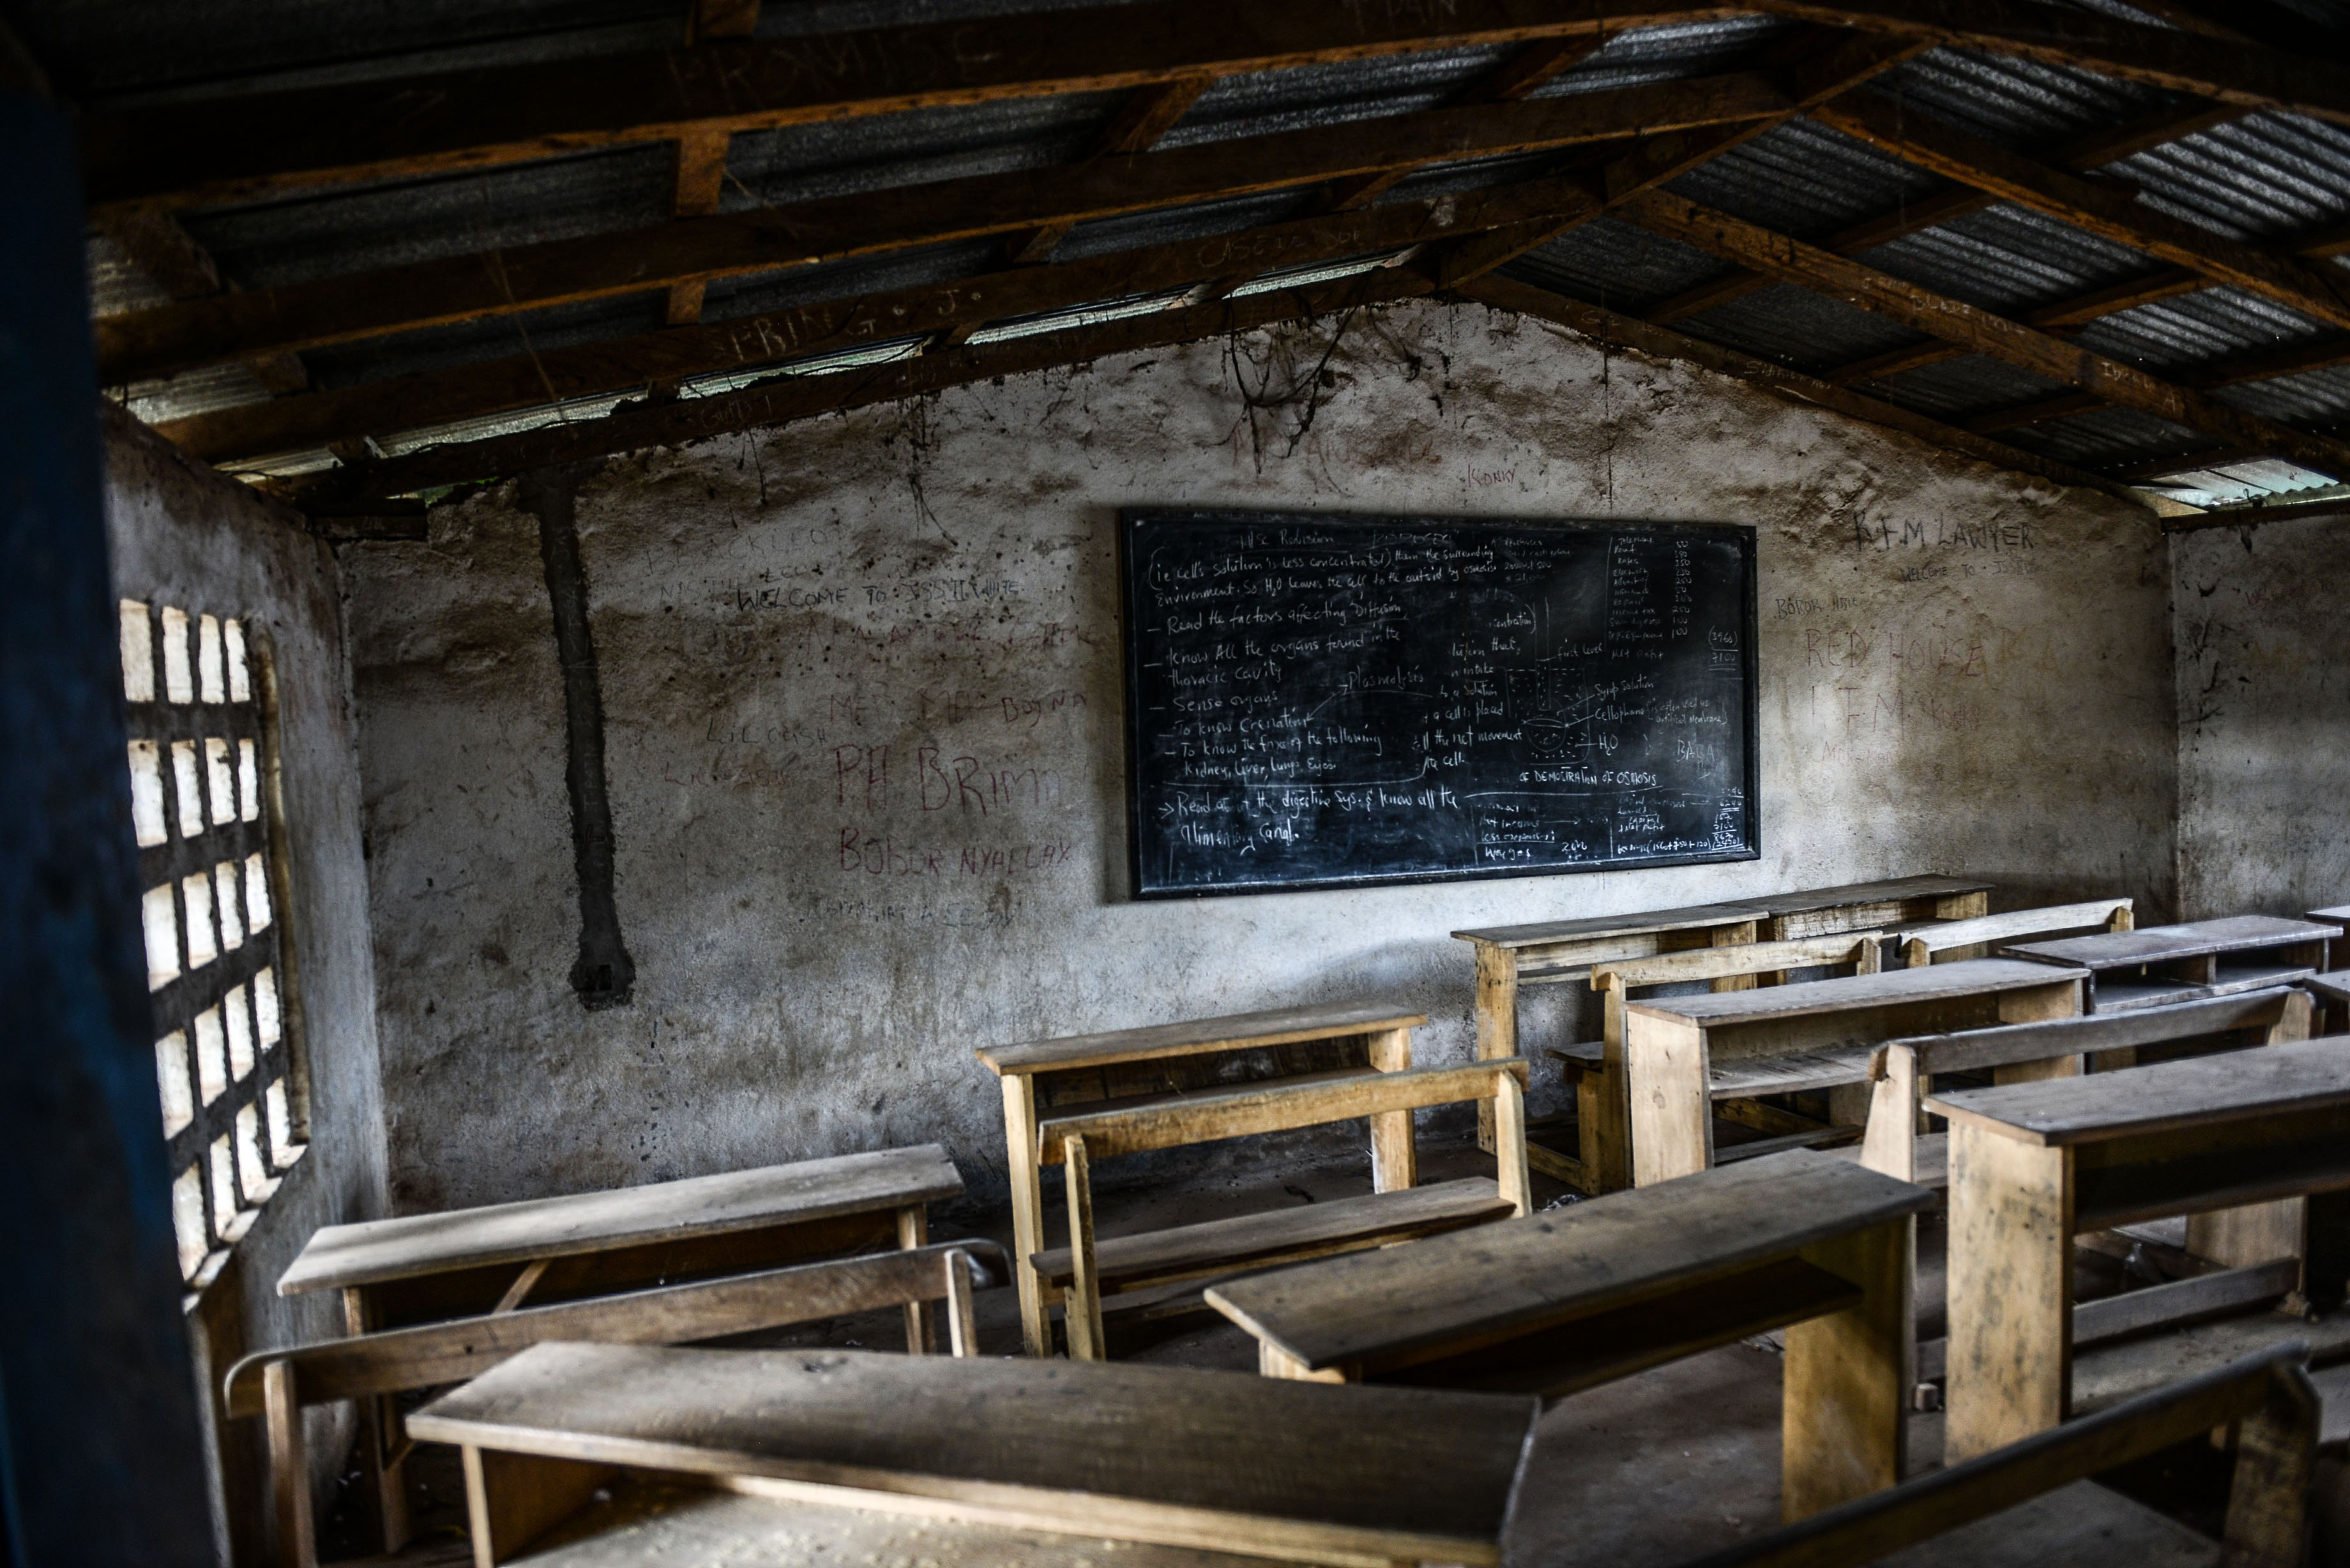 A classroom of a school stands abandoned on Aug. 25, 2014 in Kenema, Sierra Leone. Schools closed and villages quarantined after dozens of its congregation died with Ebola symptoms.